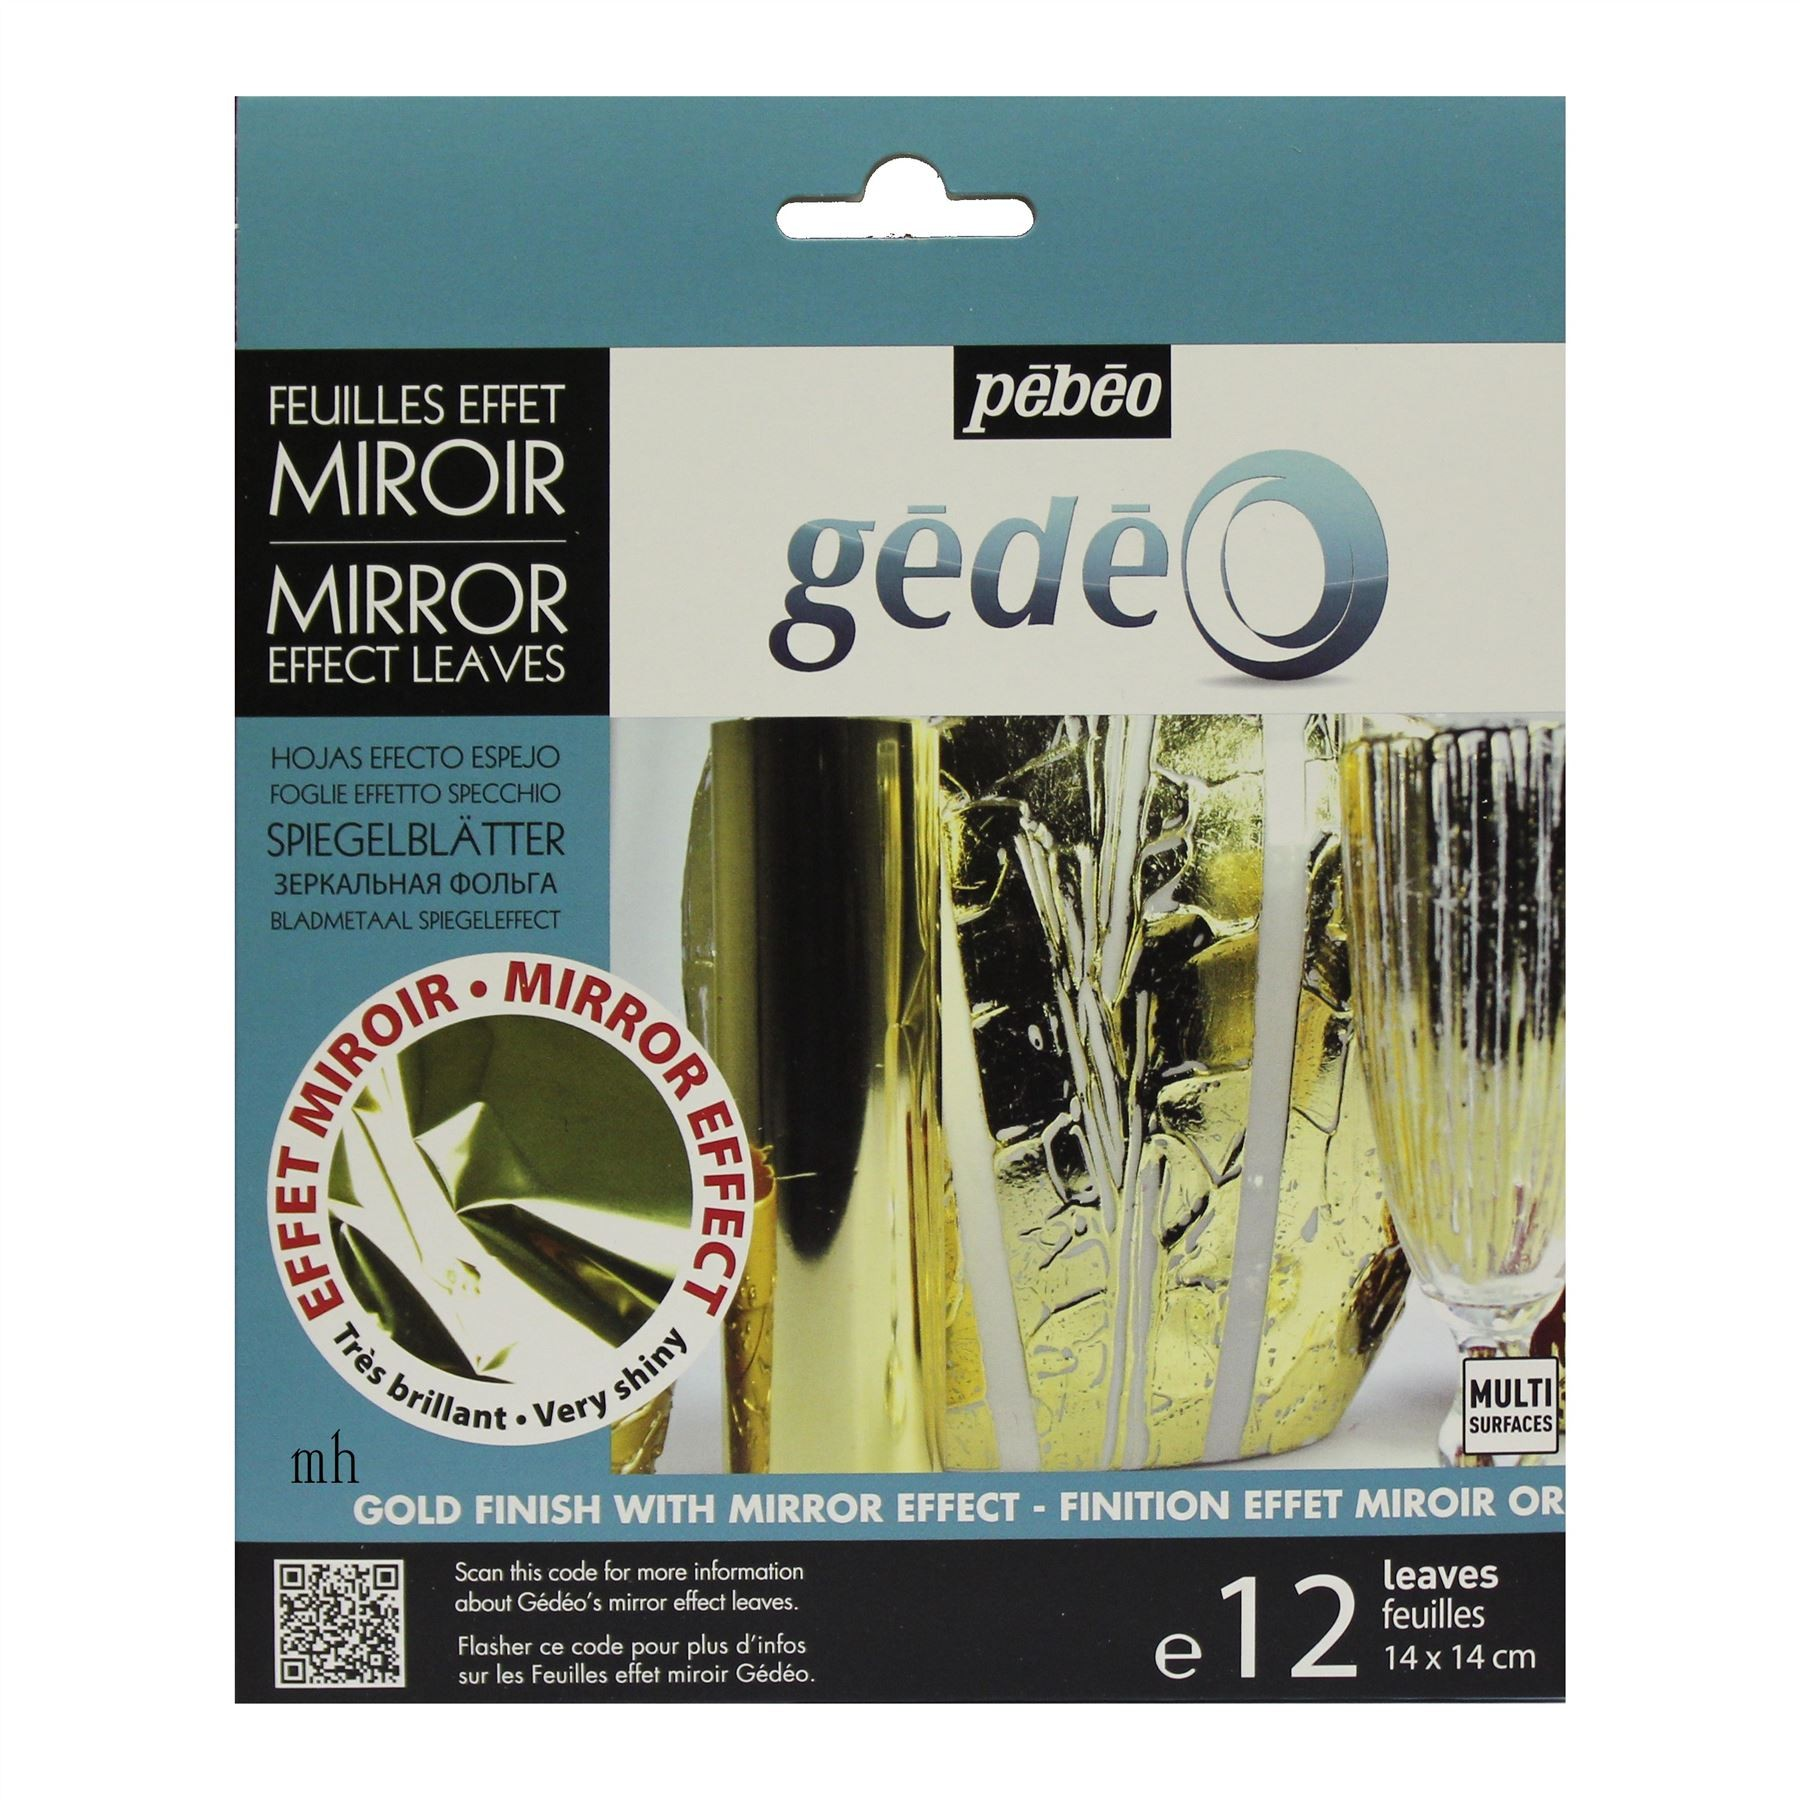 Pebeo mirror effect leave foils